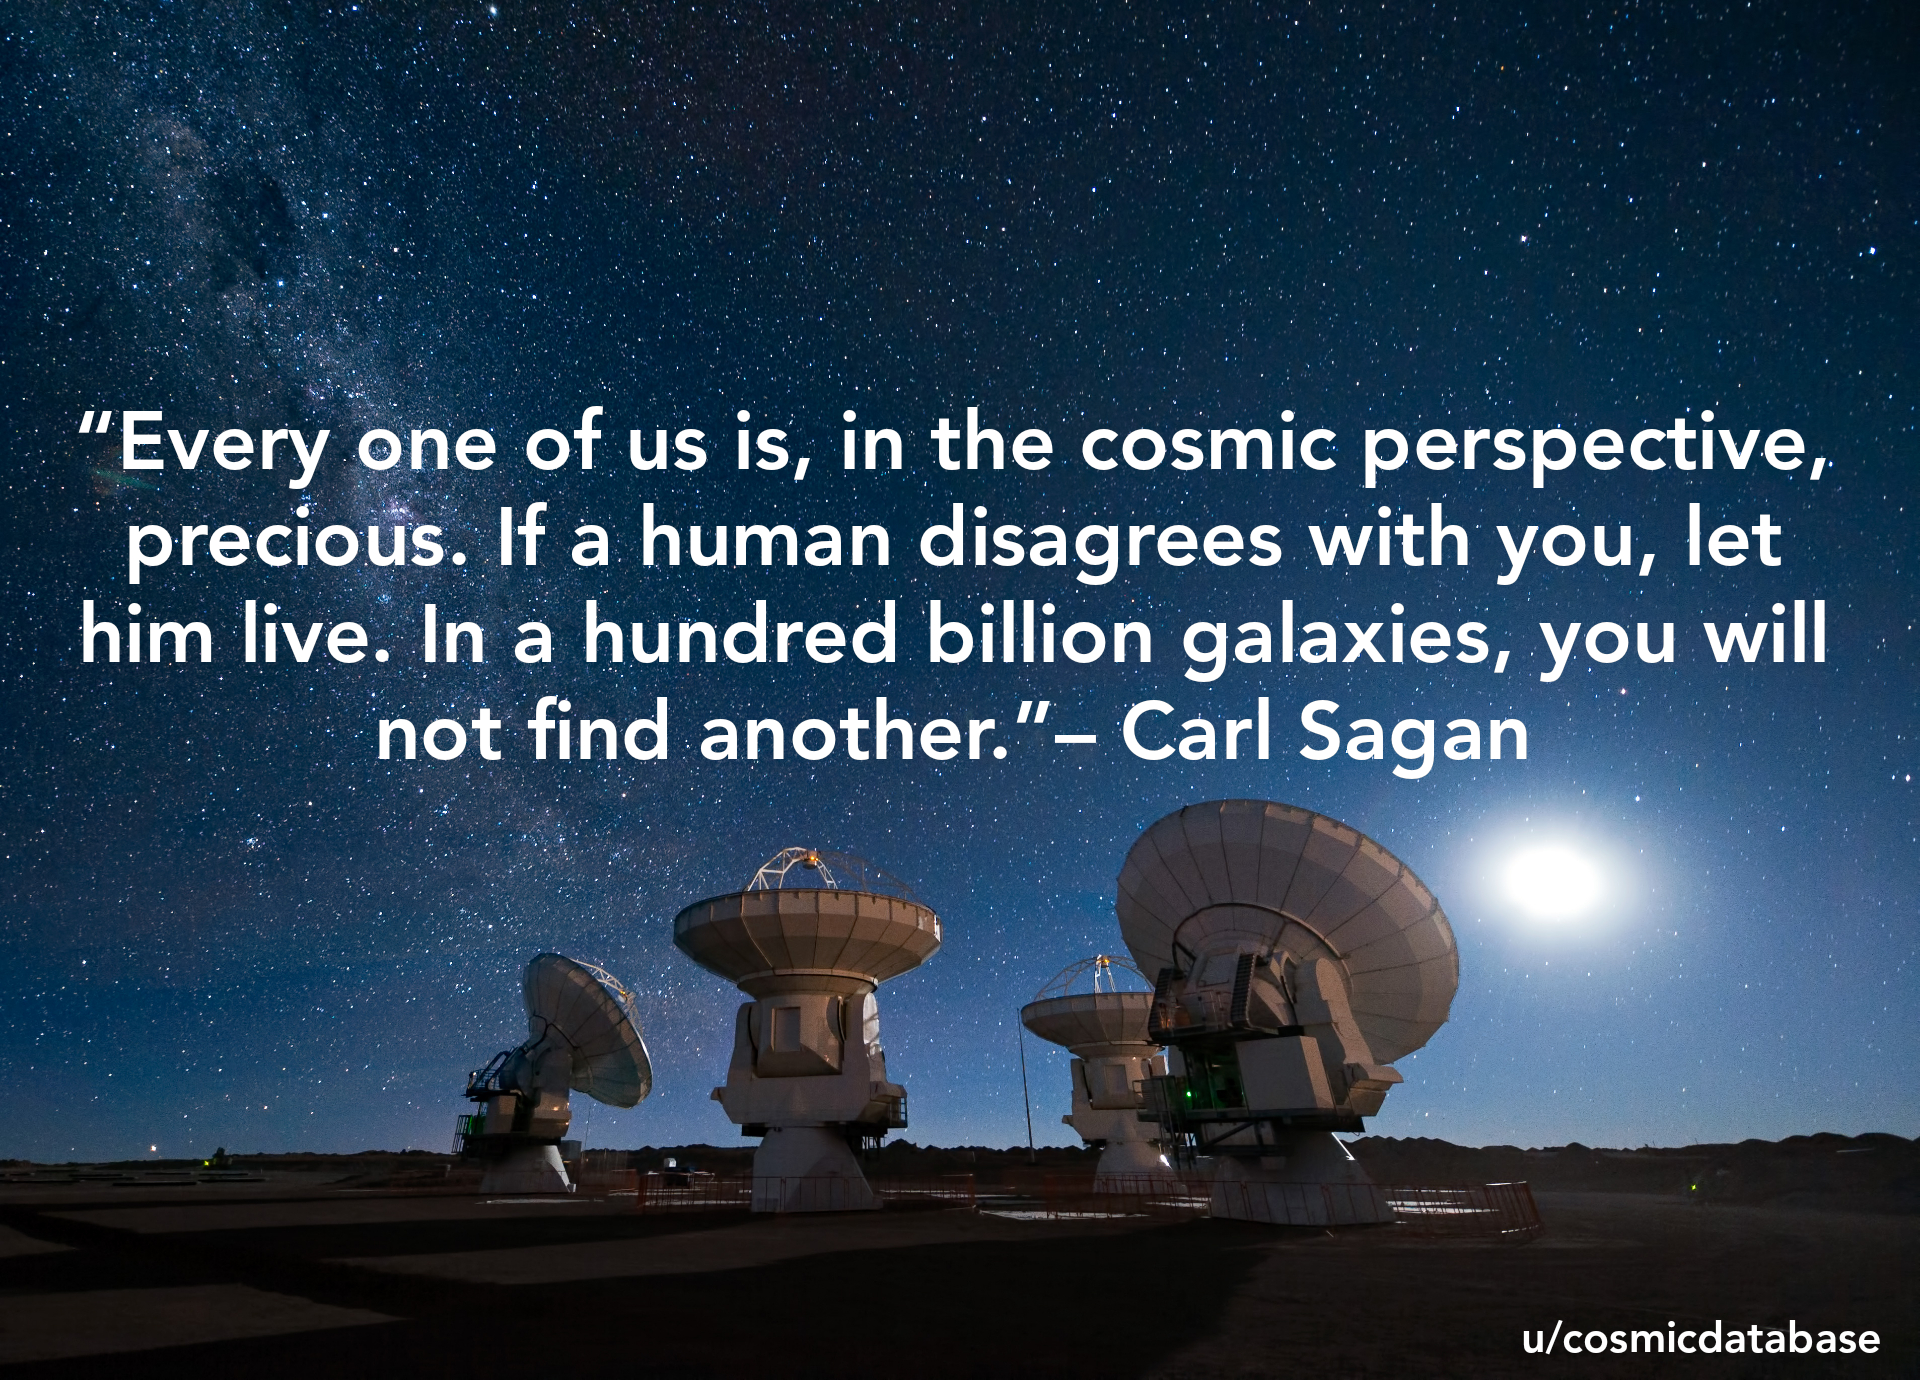 """Every one of us is, in the cosmic perspective, precious. If a human disagrees with you, let him live. In a hundred billion galaxies, you will not find another.""– Carl Sagan [OC] [1920×1380]"